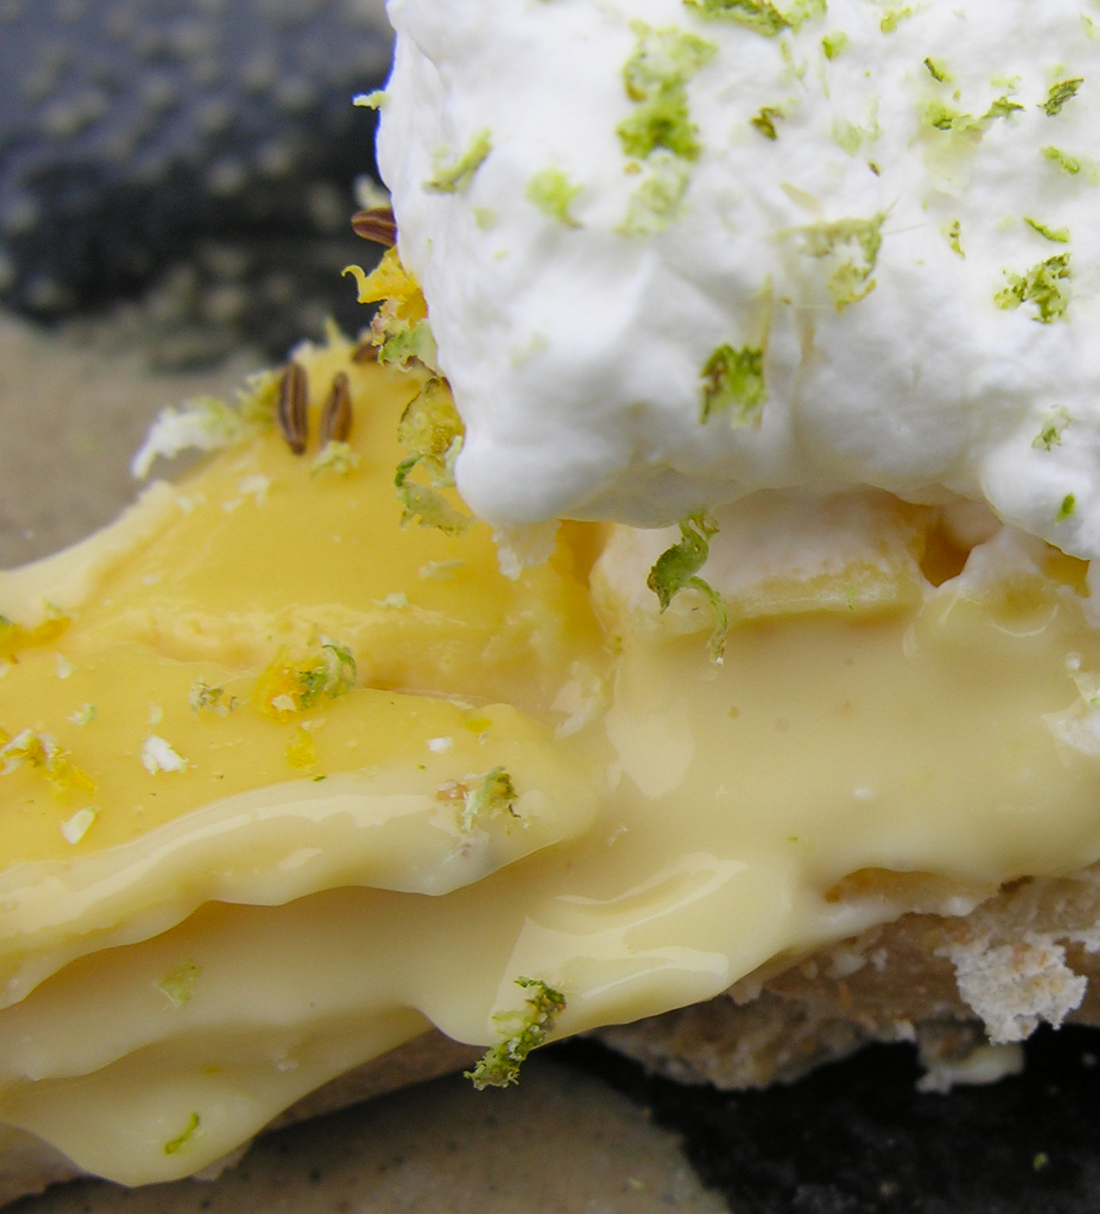 Rustic key lime pie, from the land of yogurt and honey